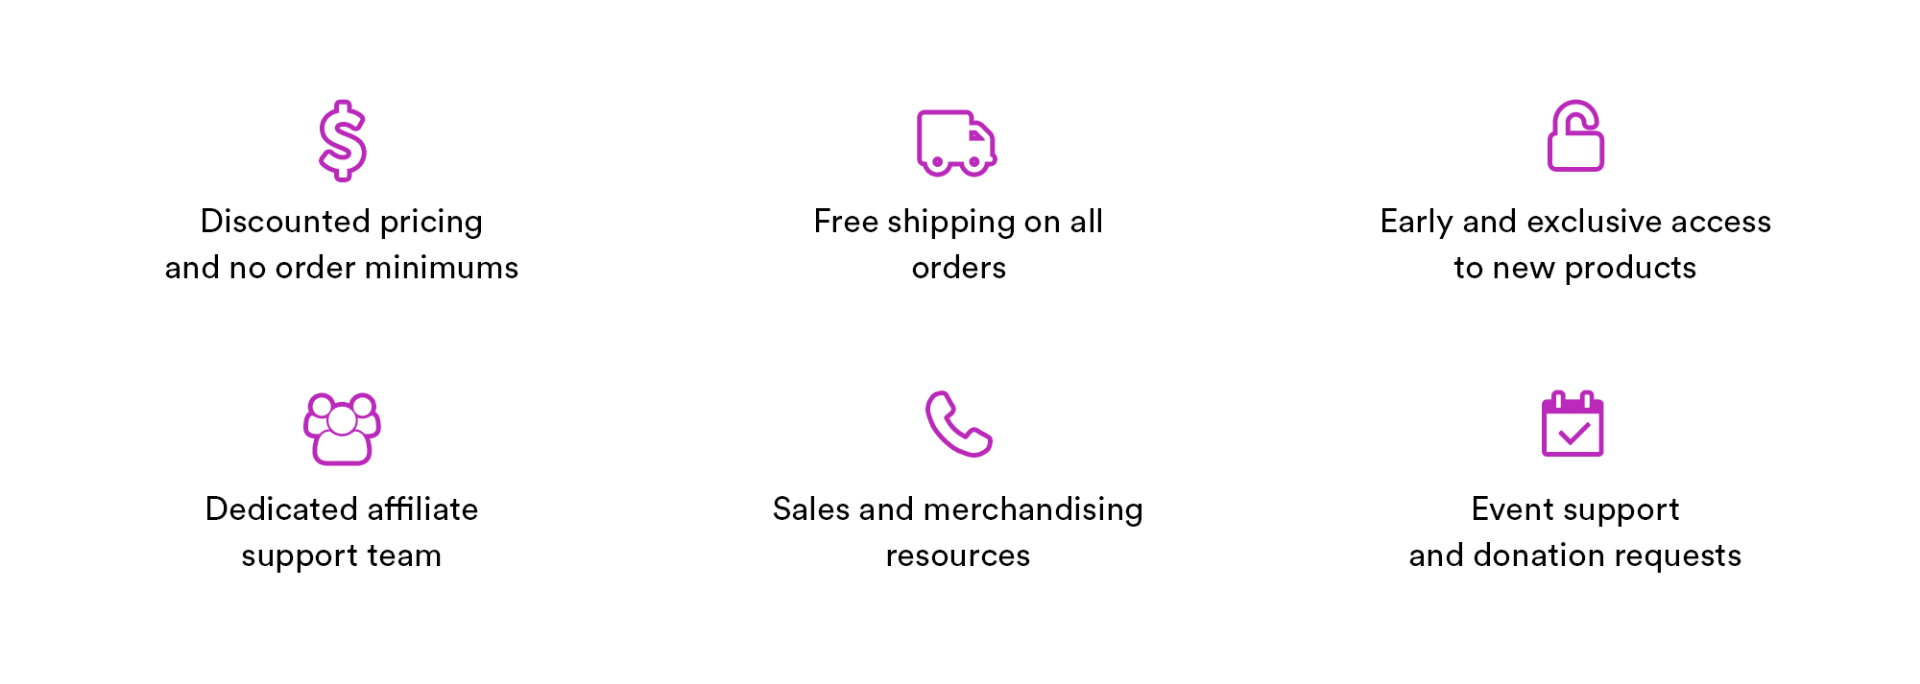 discounted pricing and no order minimums, free shipping on orders, early and exclusive access to new products, dedicated affiliate support team, sales and merchandising resources, event support and donation requests